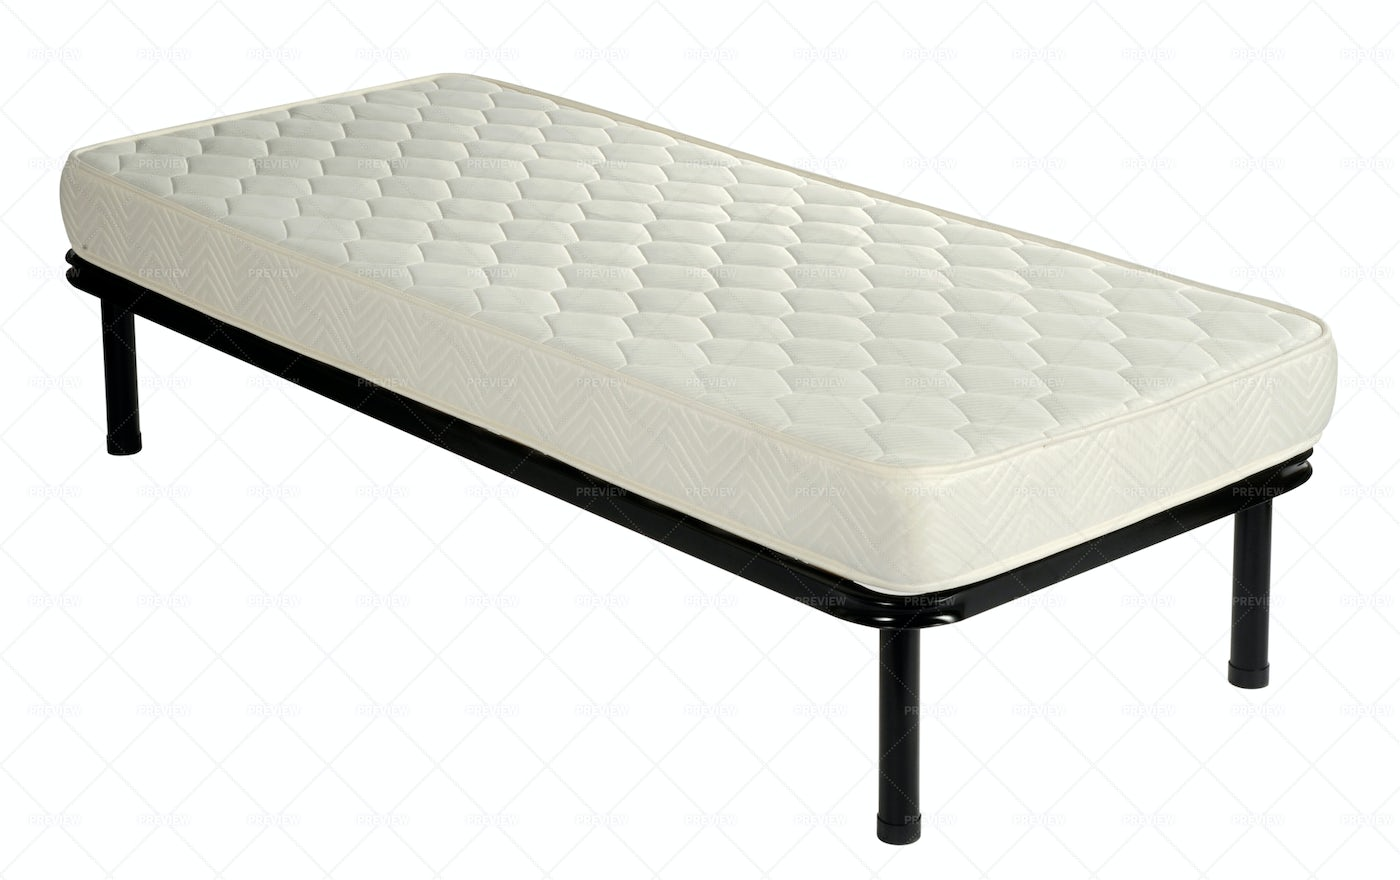 Single Bed With Mattress: Stock Photos